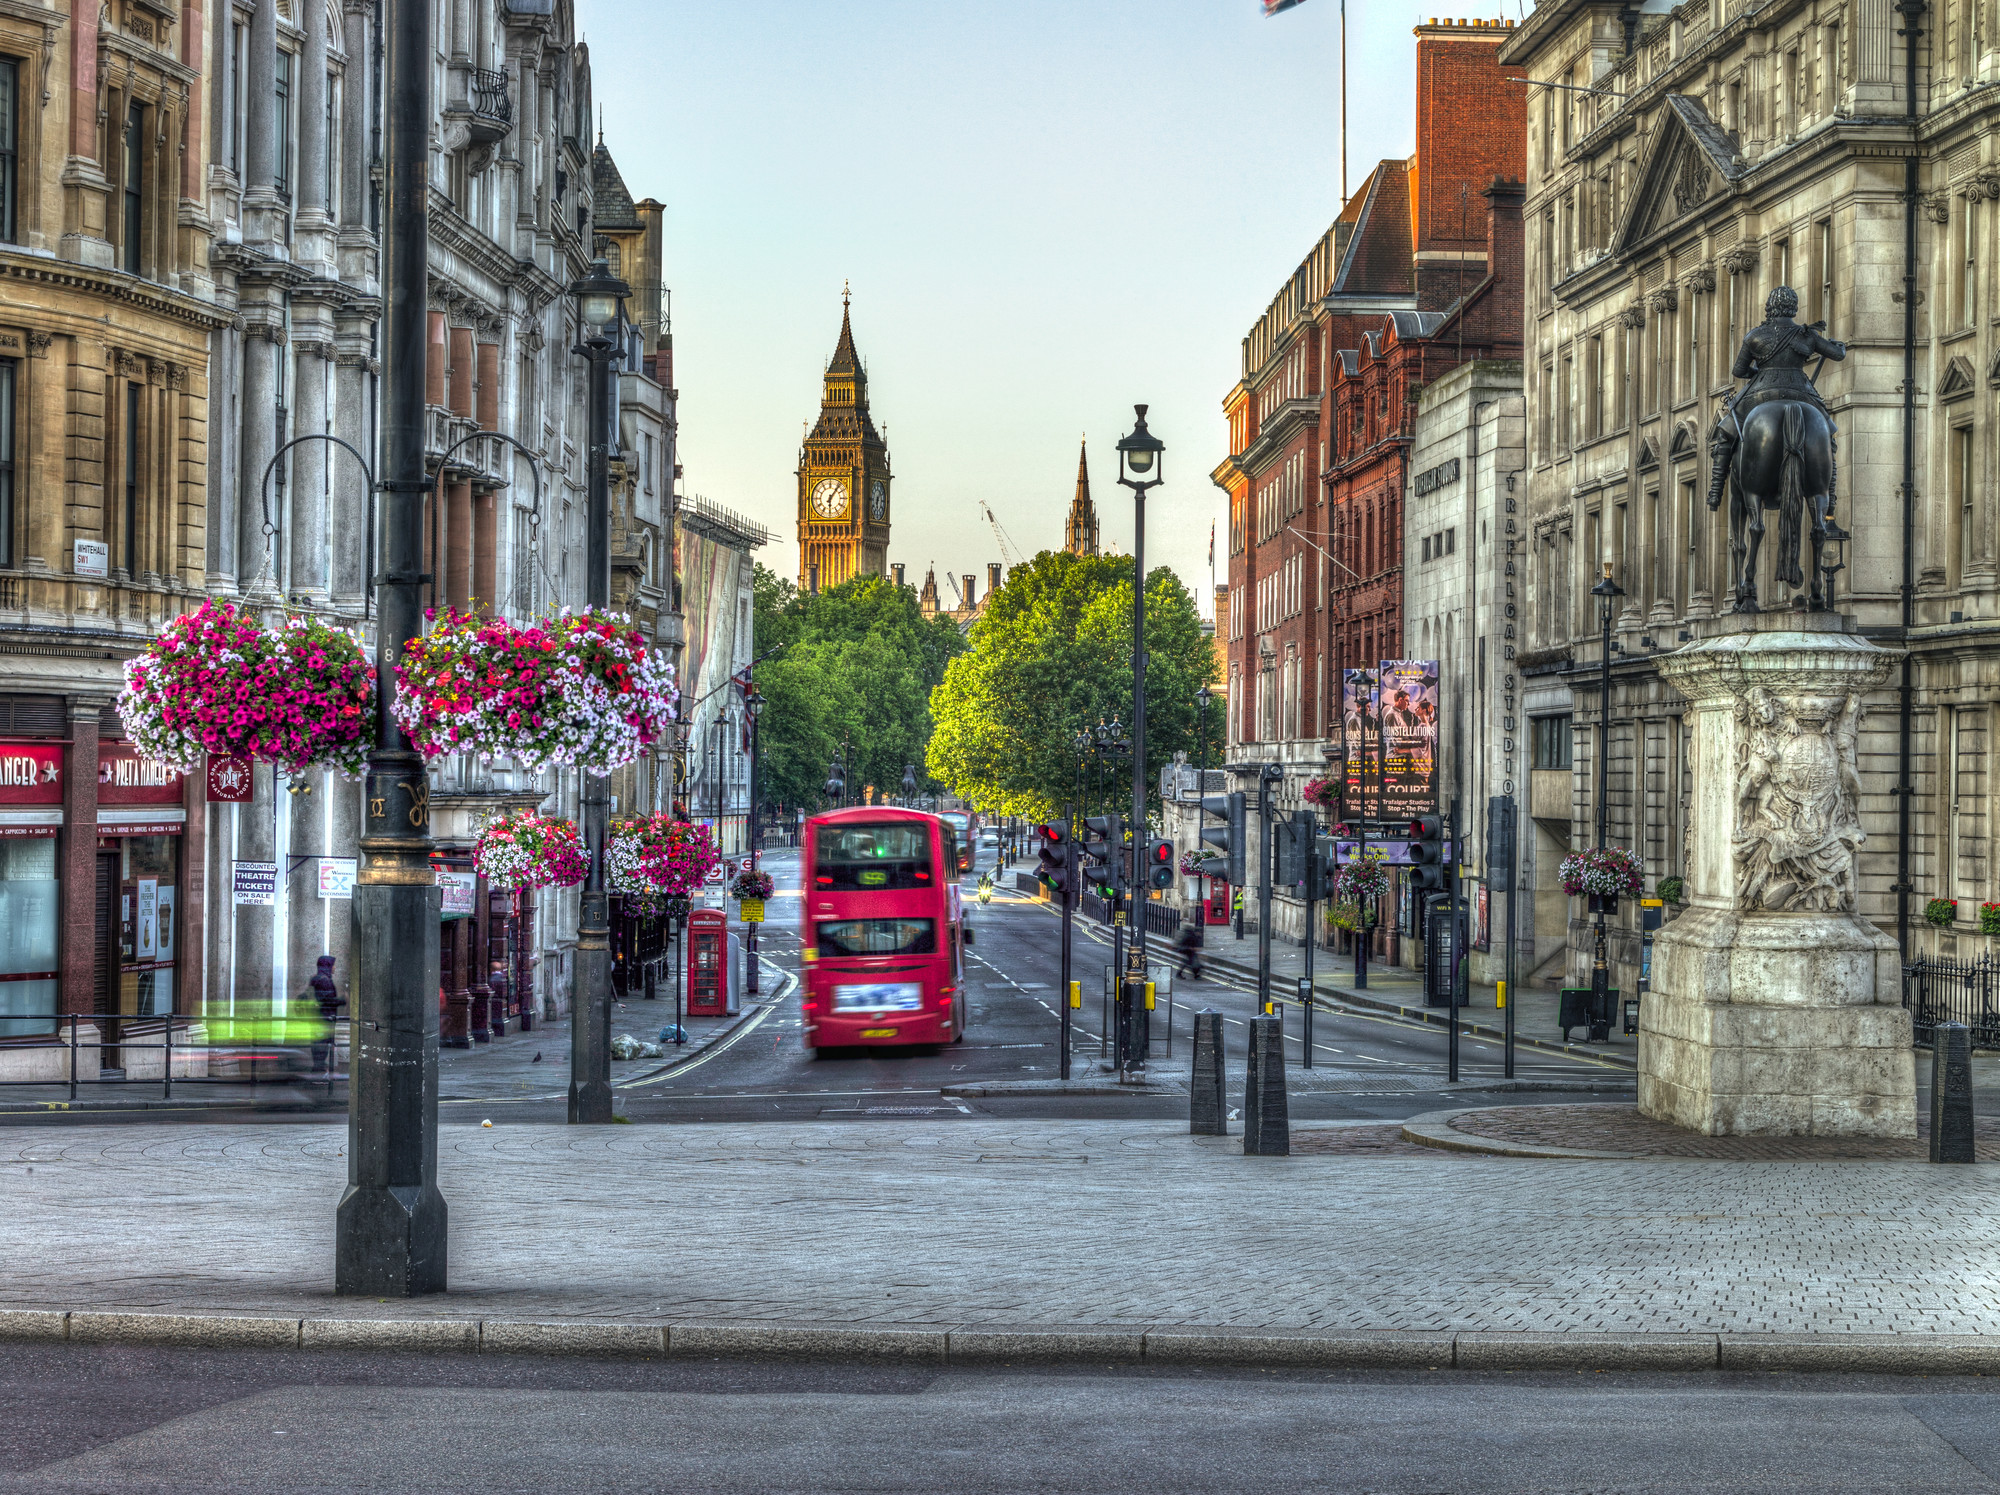 2000x1495 Streets of London city with Double Decker Bus wallpaper mural